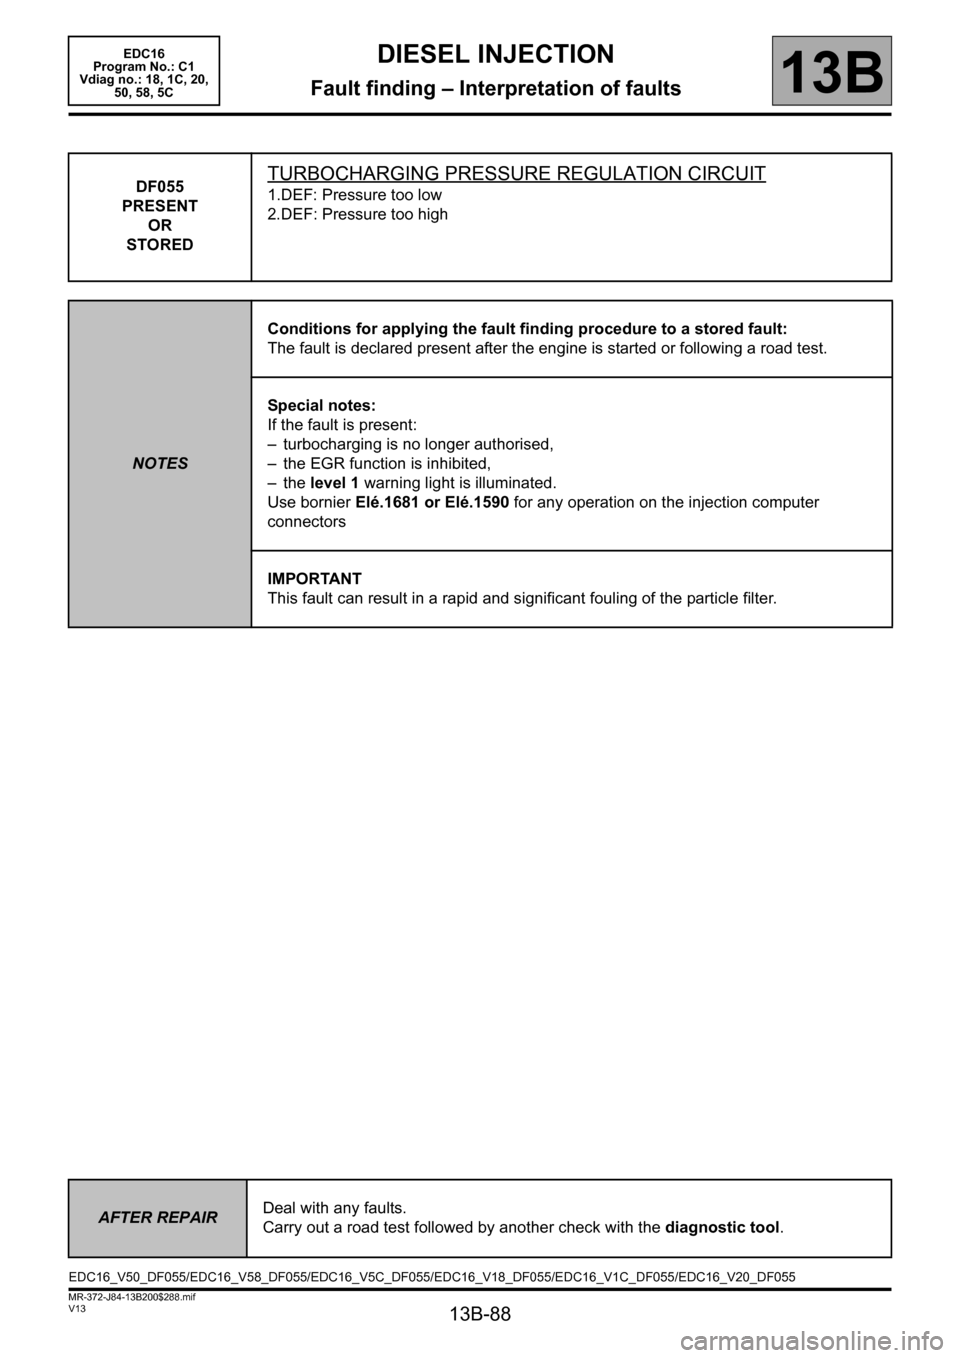 RENAULT SCENIC 2011 J95 / 3.G Engine And Peripherals EDC16 Workshop Manual, Page 88